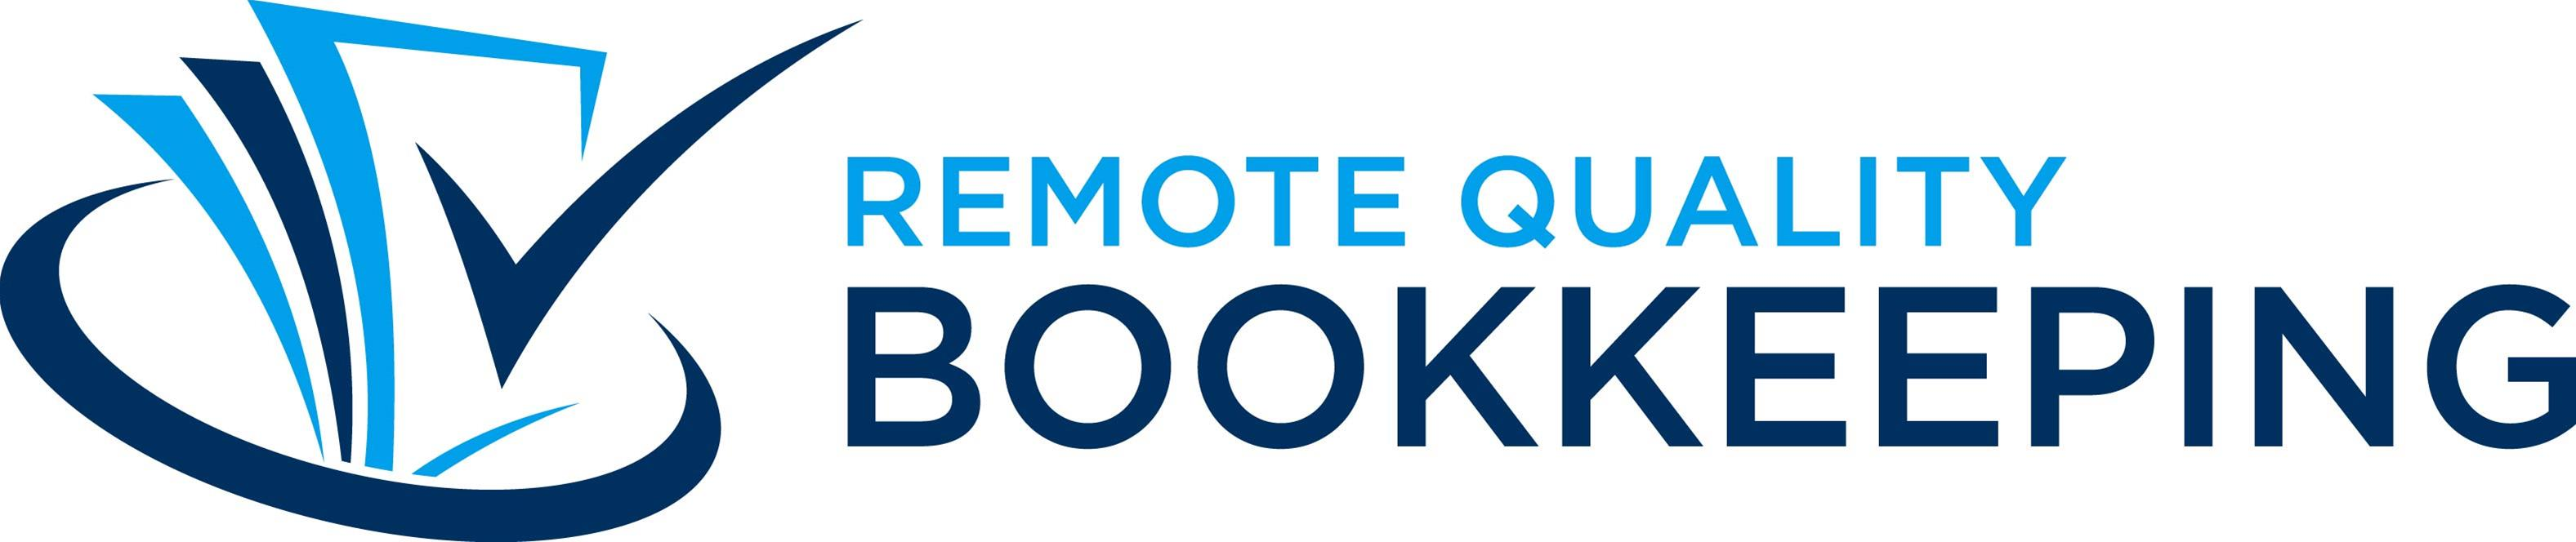 Remote Quality Bookkeeping logo